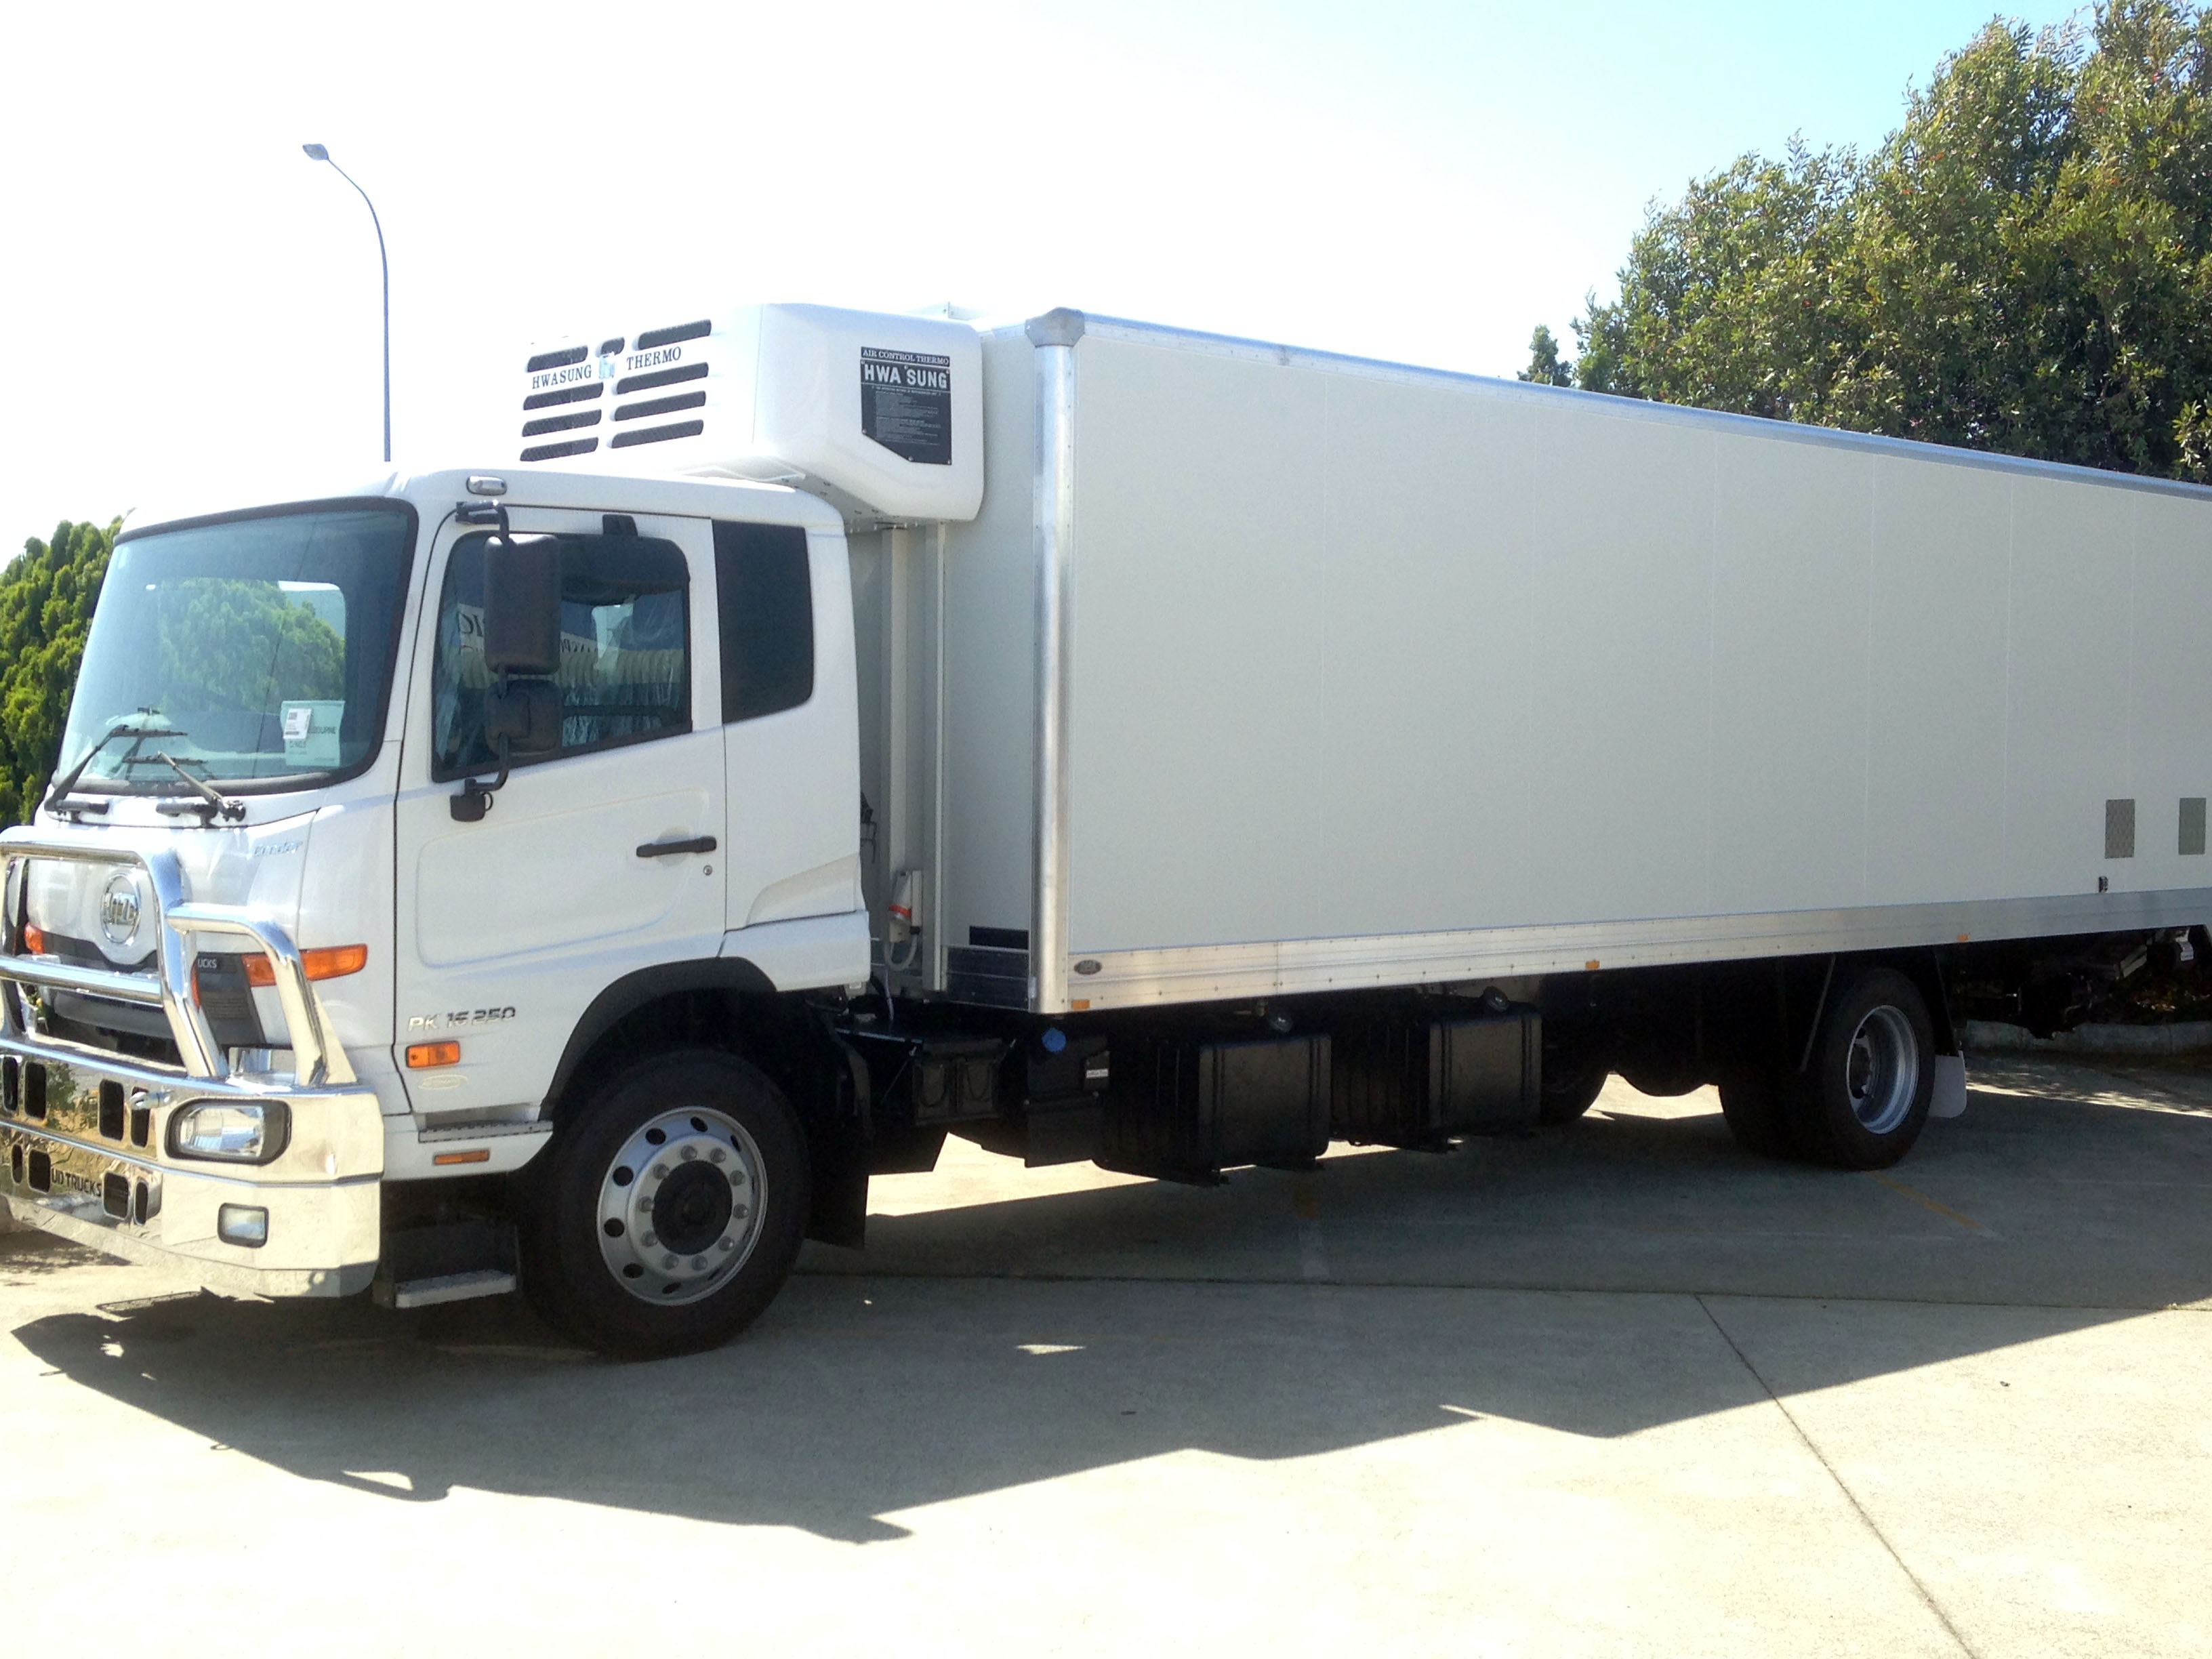 Refrigerated Truck Vehicle : Refrigerated trucks featured portfolio categories air